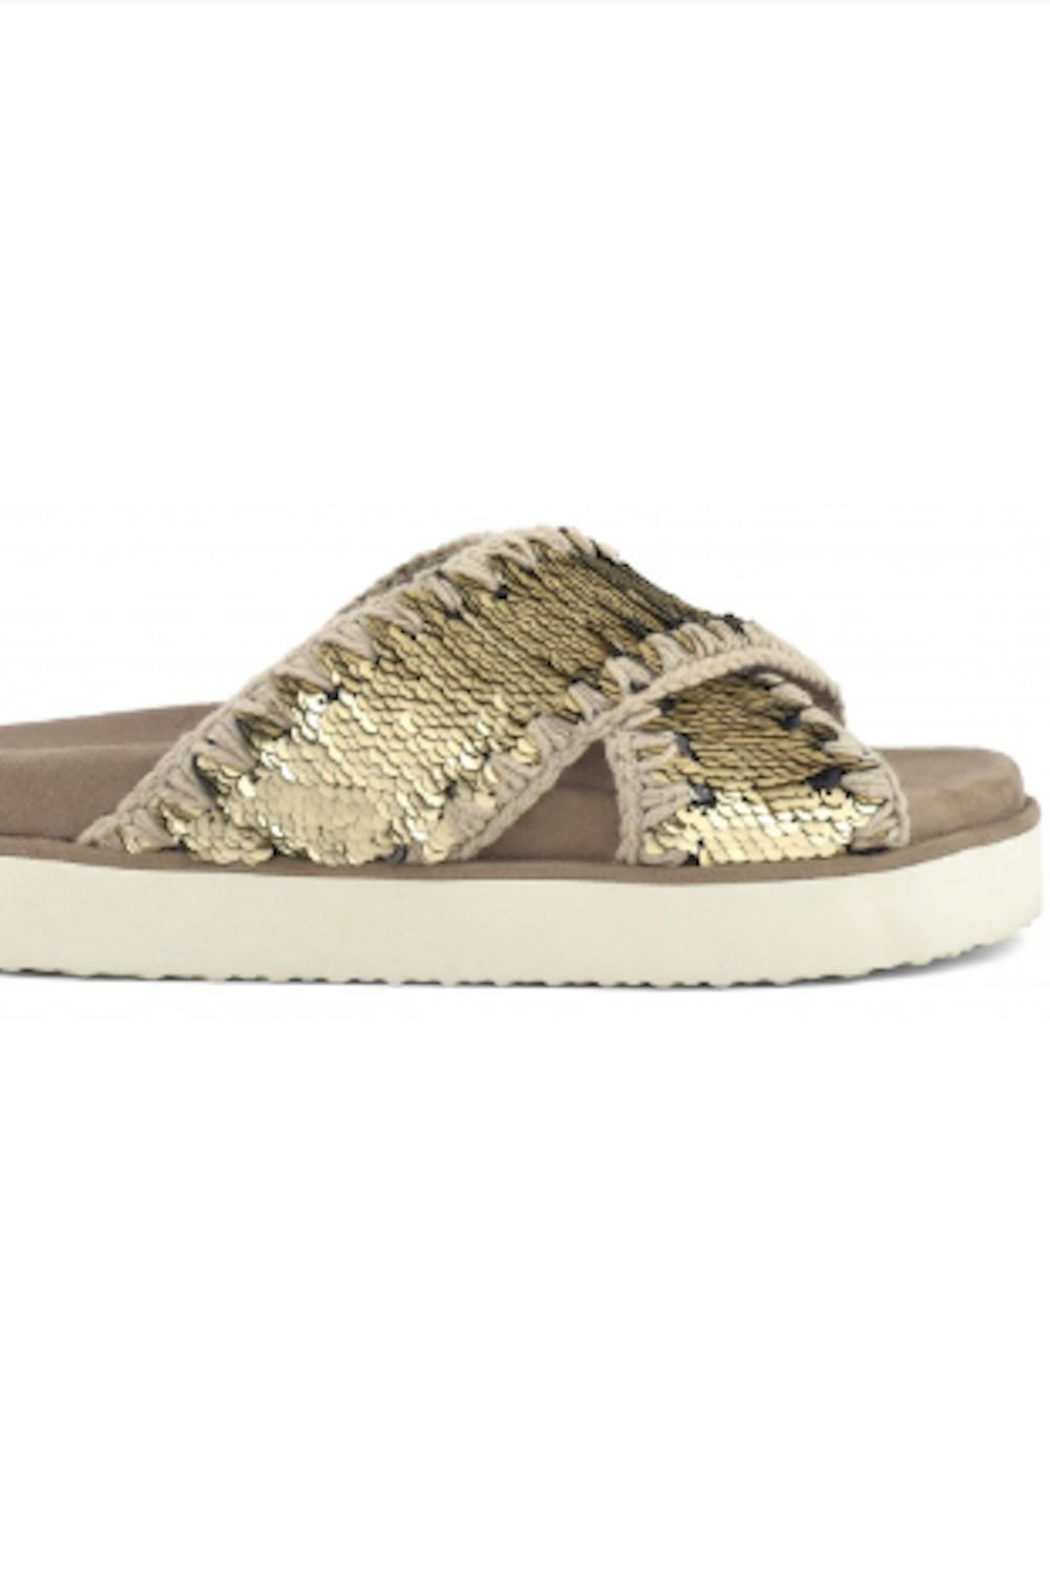 MOU  Criss Cross Bio Sandal Plain Gold - Main Image